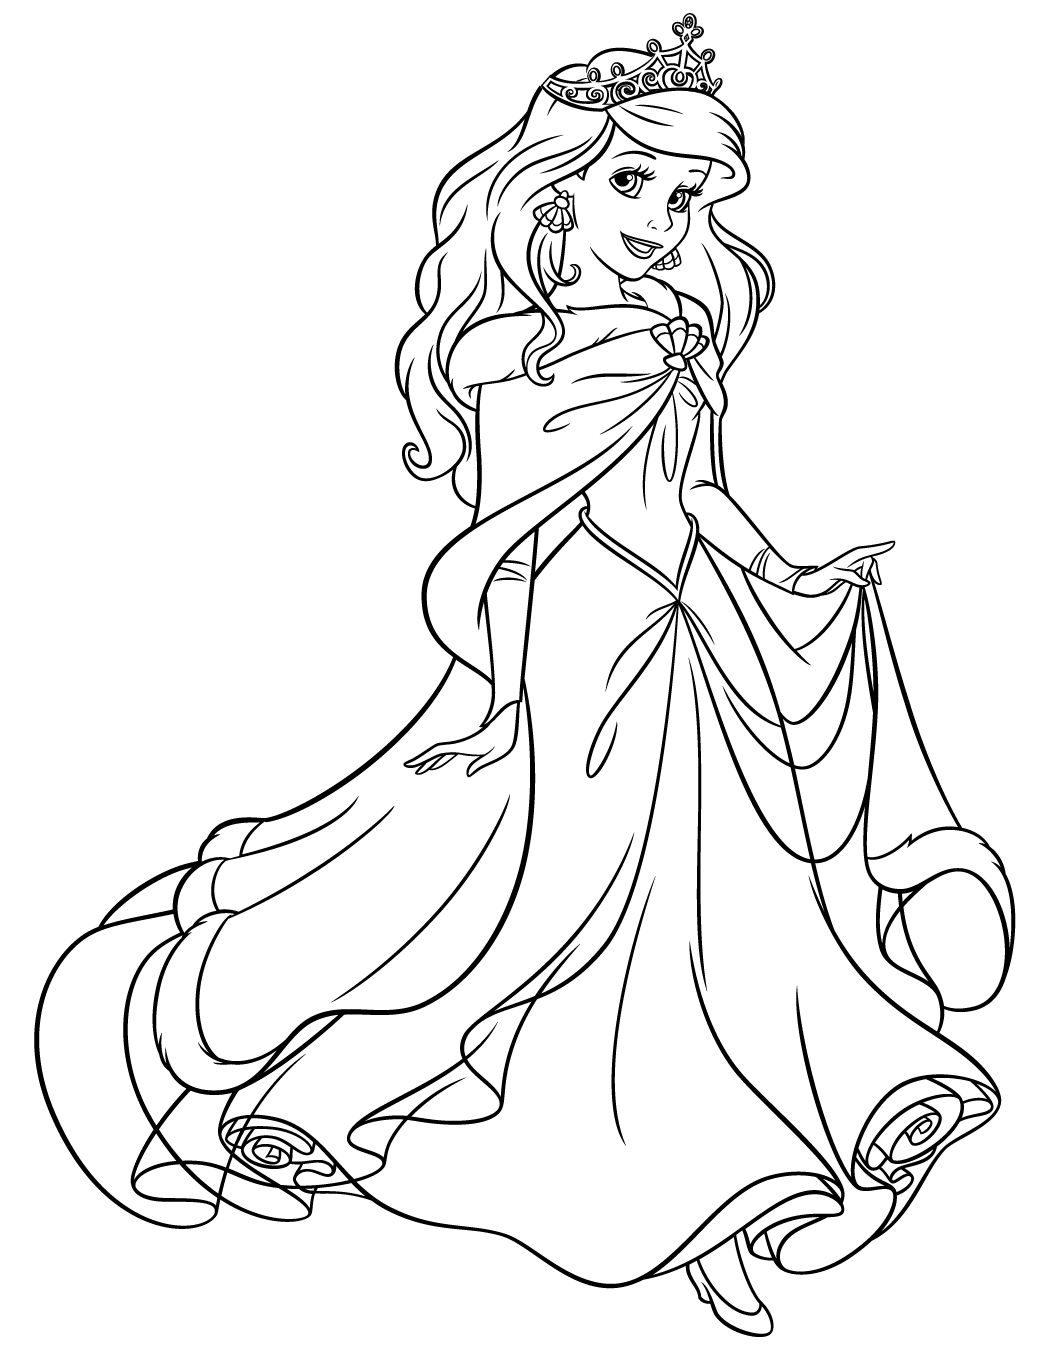 ariel coloring pages online - photo#48